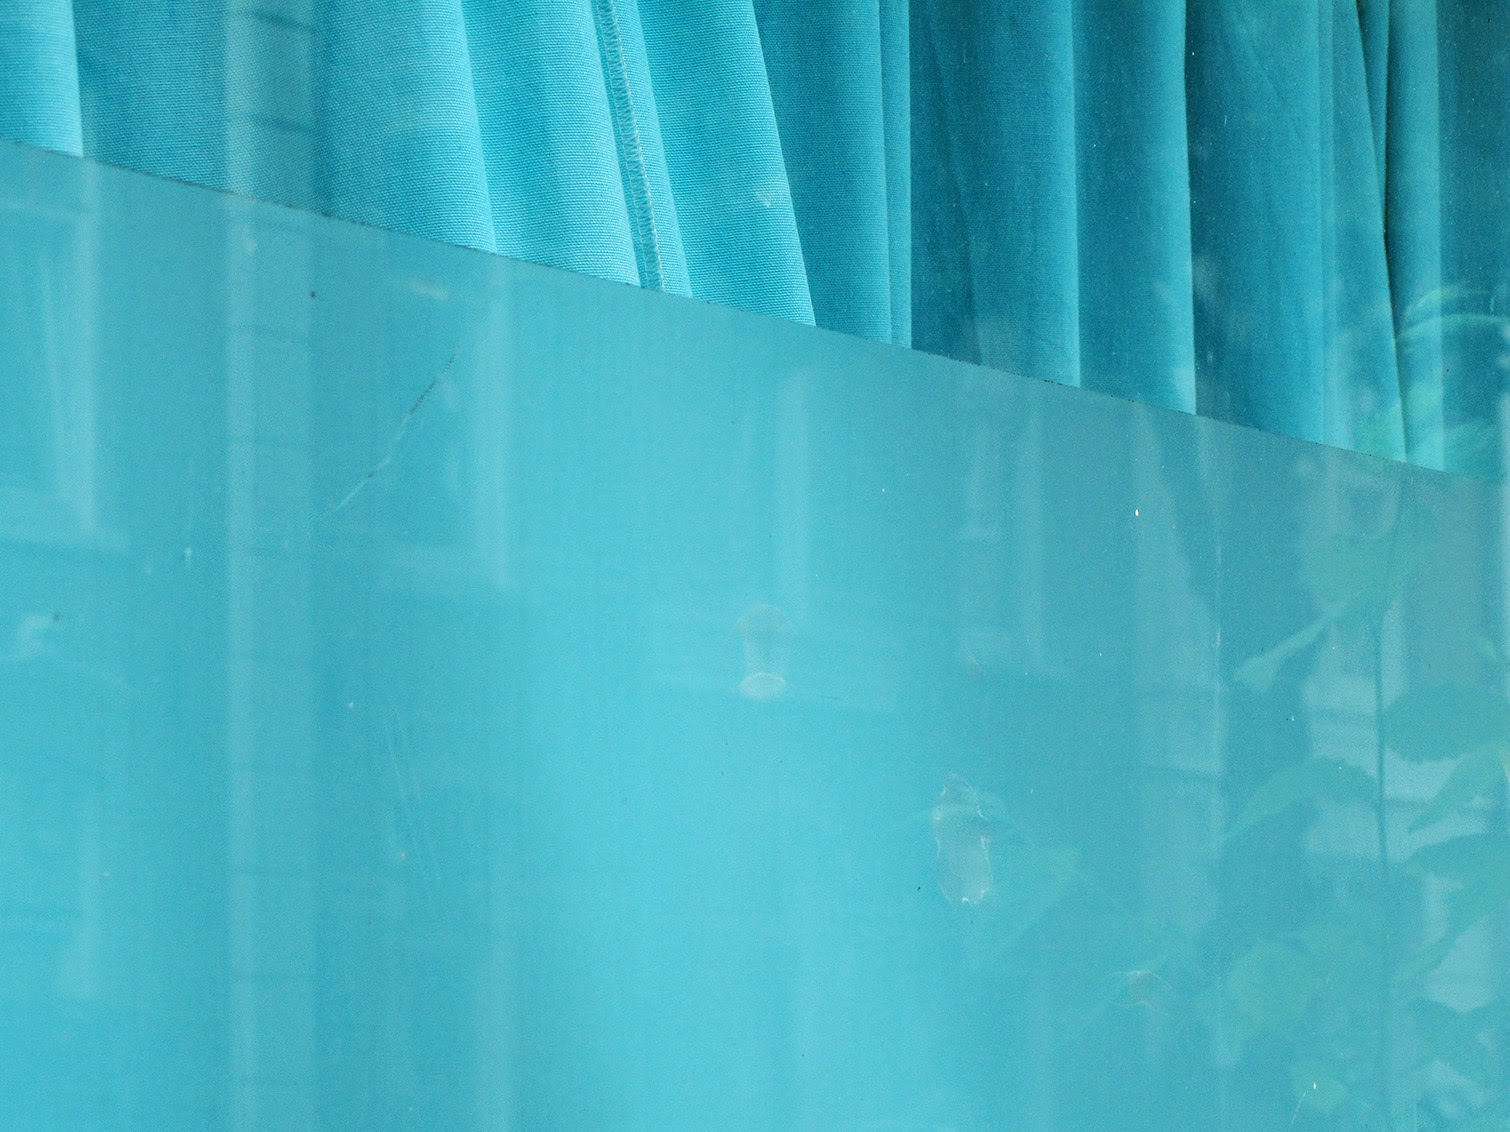 blue curtain in the window